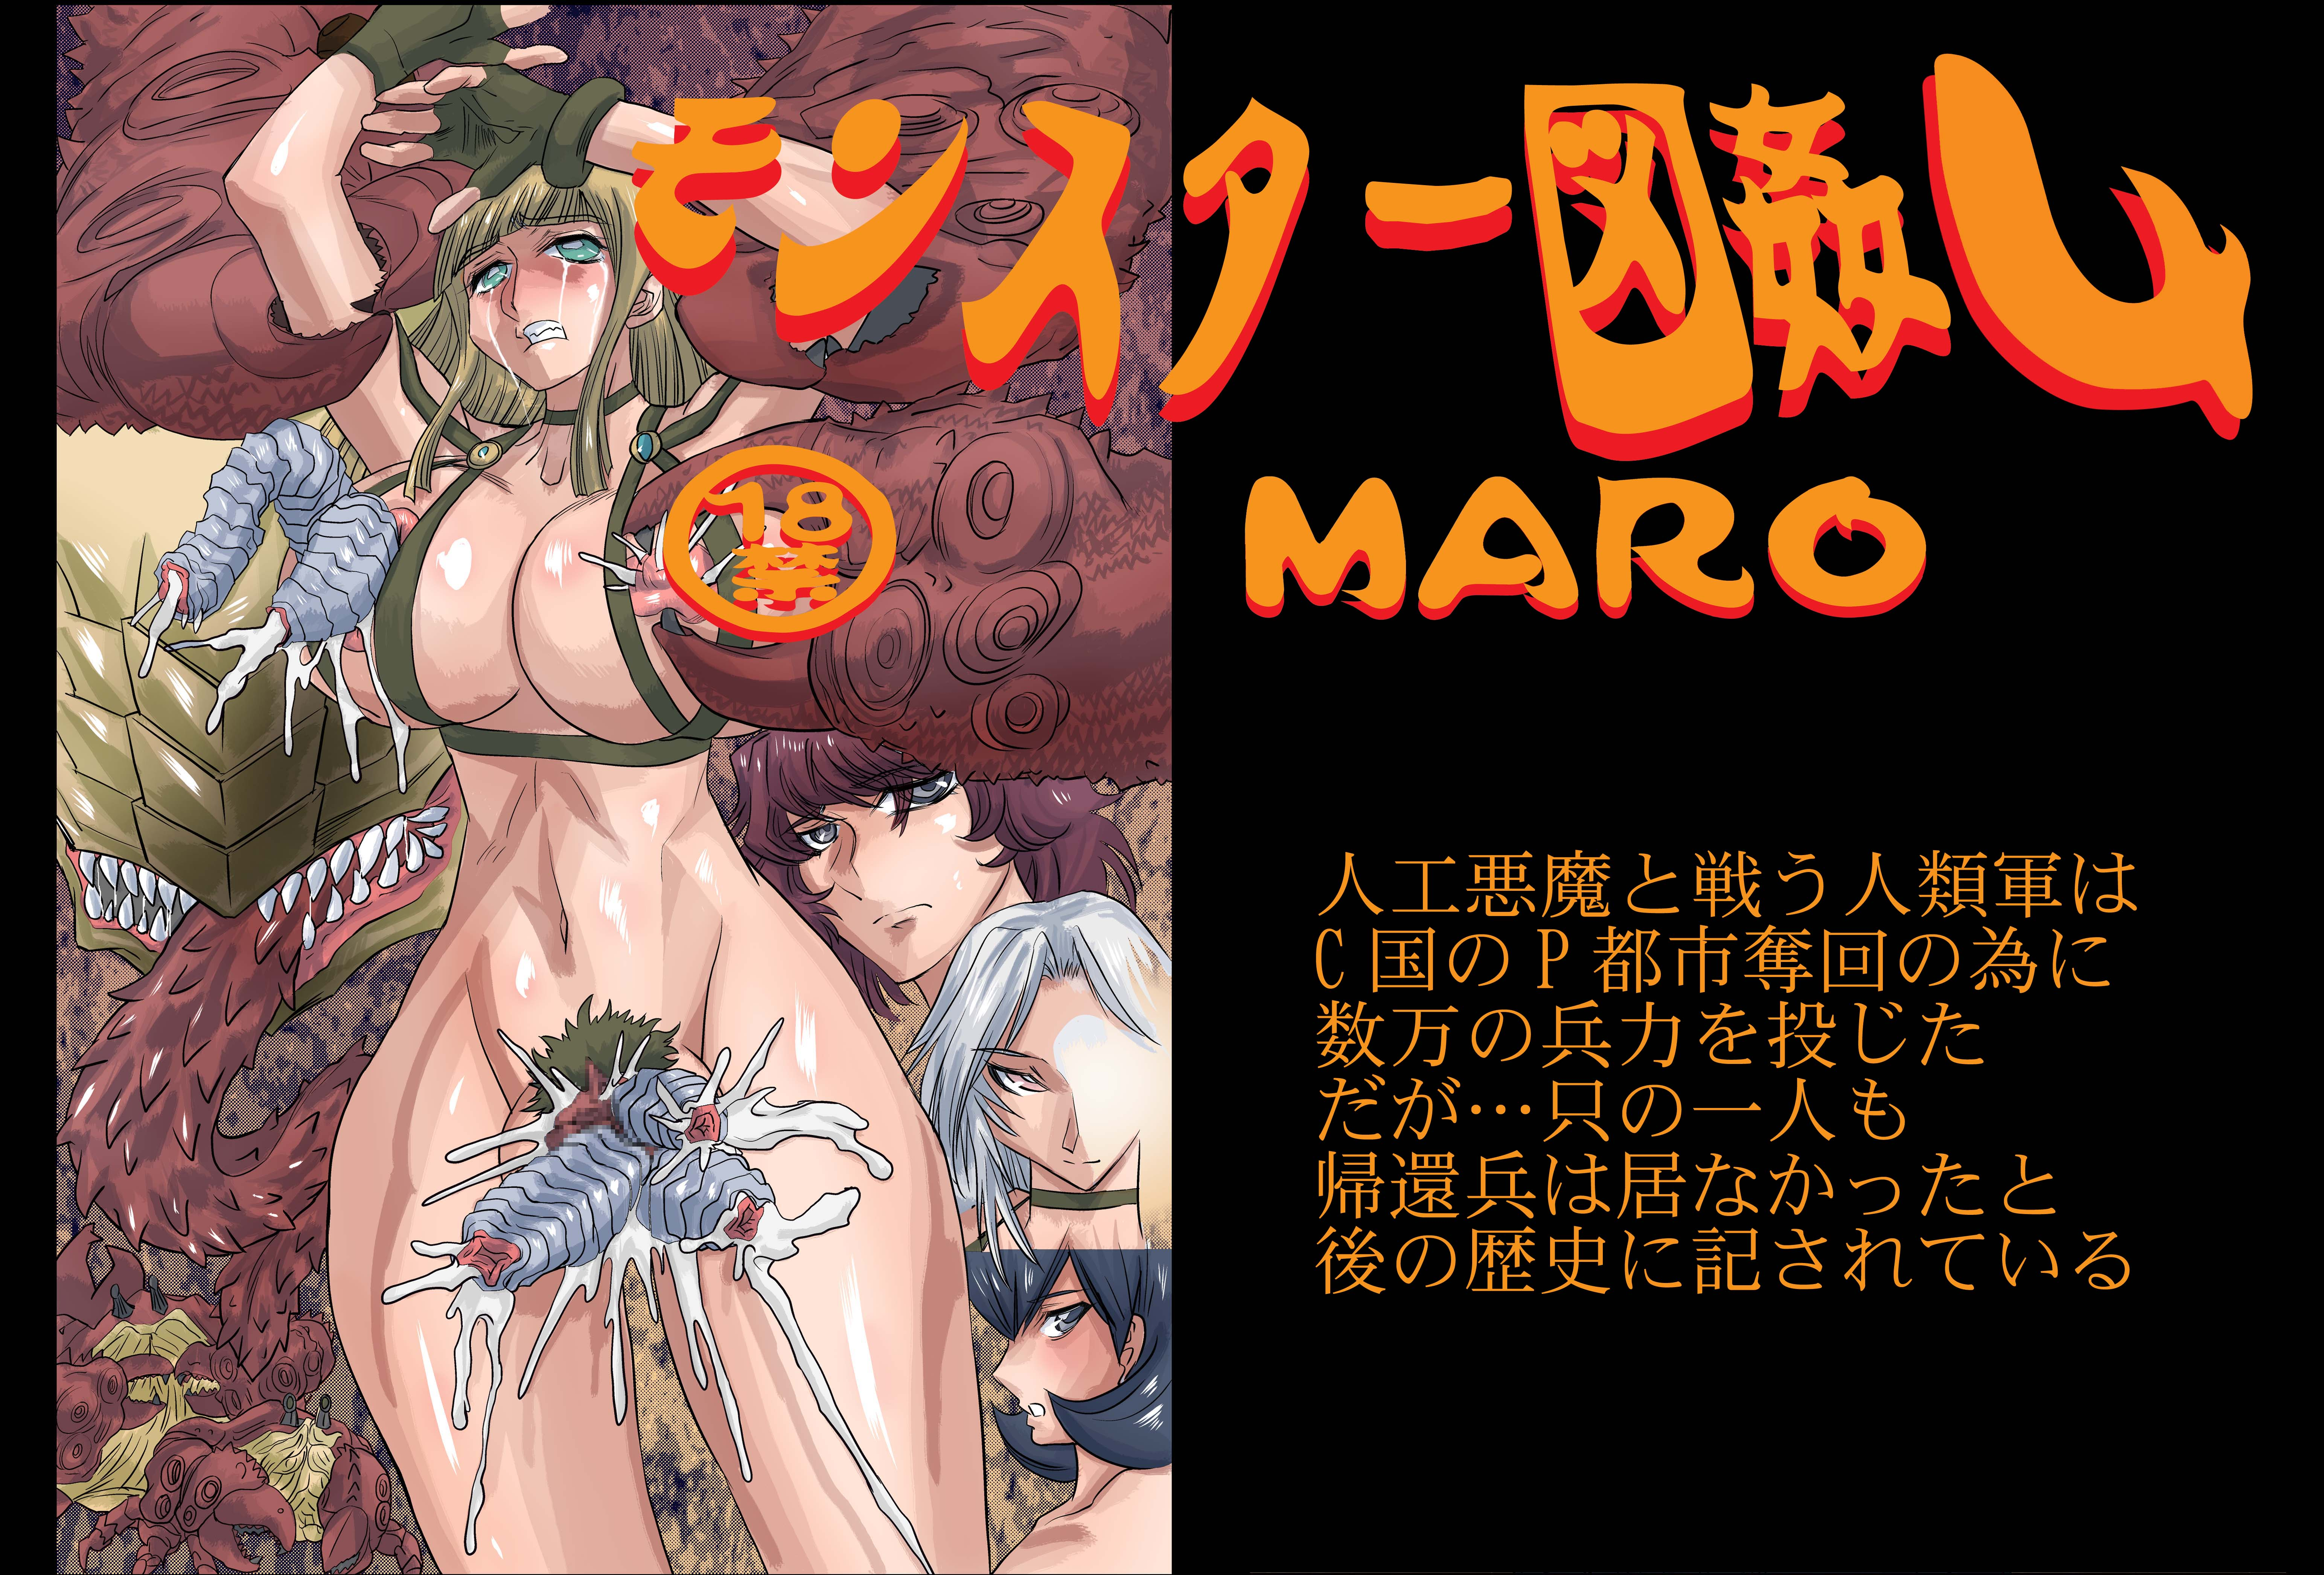 Birth rpg hentai nudes cuties